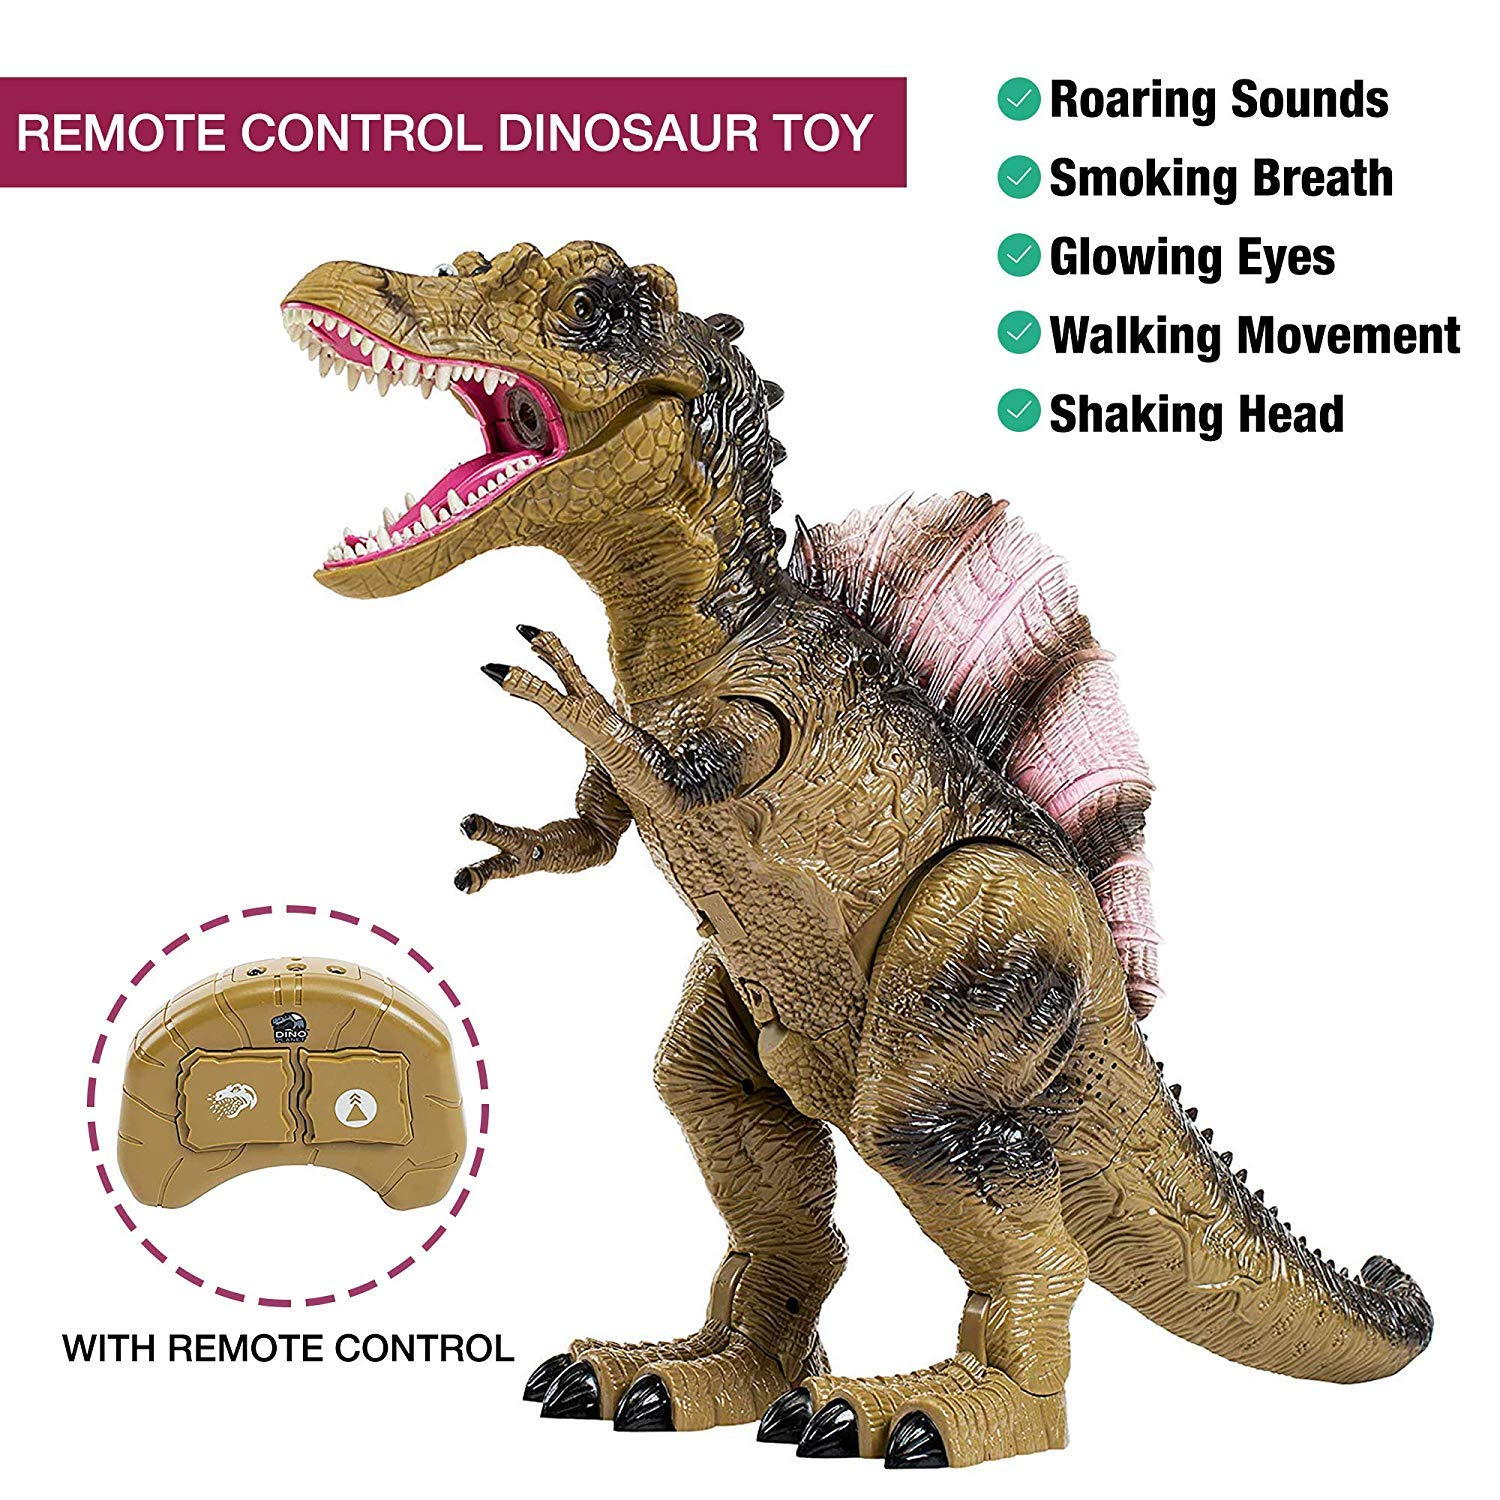 Build Me Remote Control Dinosaur Toy for Kids with Roaring Sounds and Smoking Breath. RC Spinosaurus Dino with Glowing Eyes, Walking Movement, Shaking Head. by Build Me (Image #2)